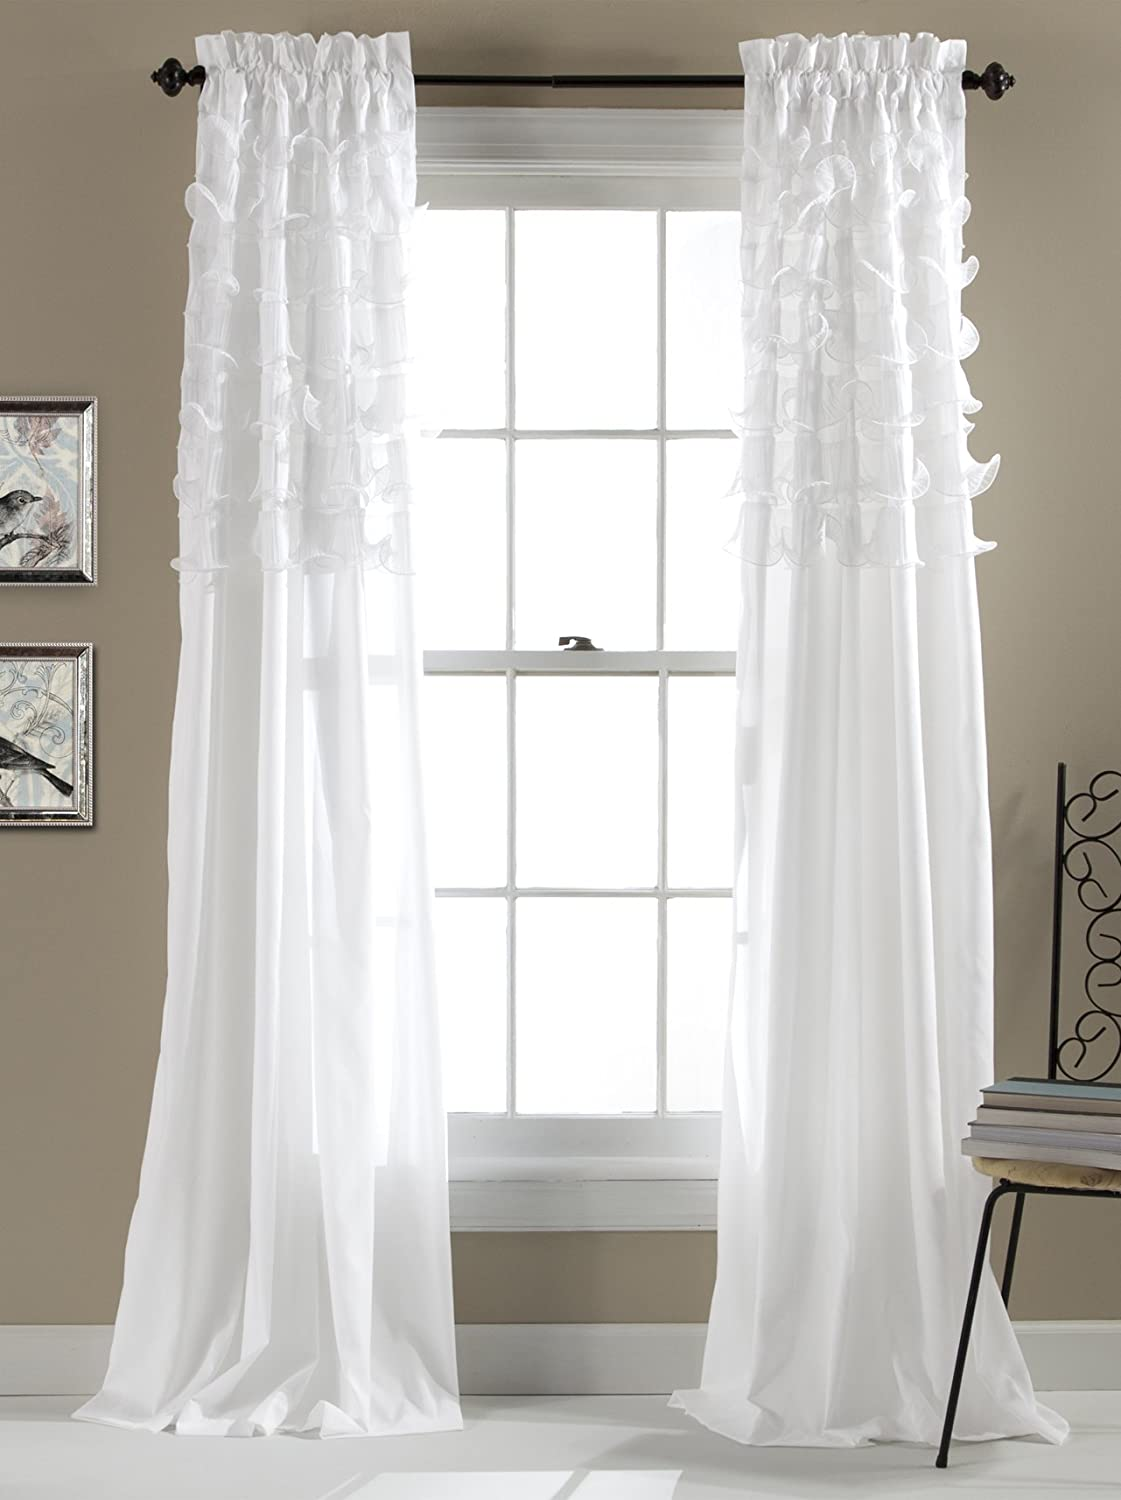 Lush Decor Avery Curtains Ruffled Shabby Chic Style Window Panel Set for Living, Dining Room, Bedroom (Pair), 84 by 54-Inch, White